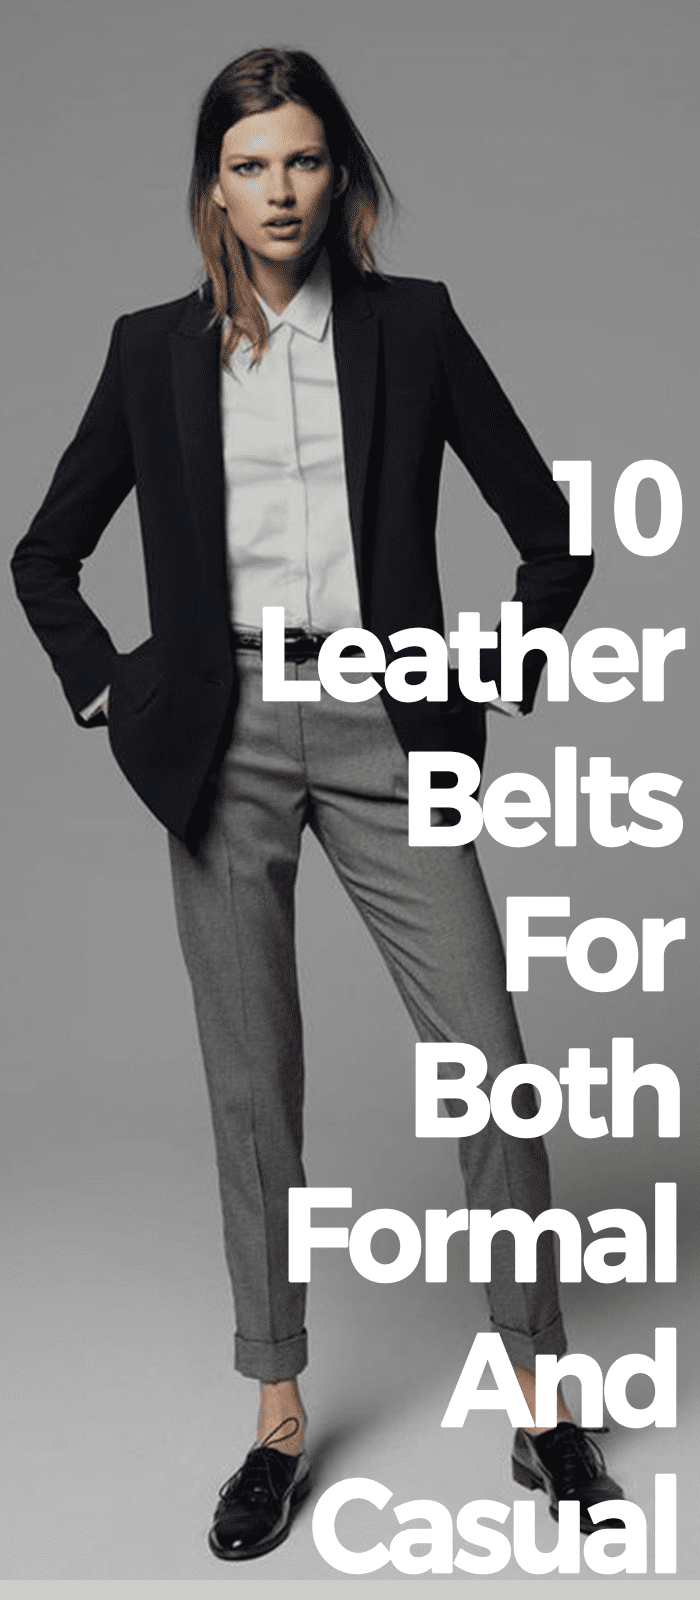 10 Leather Belts For Both Formal And Casual!